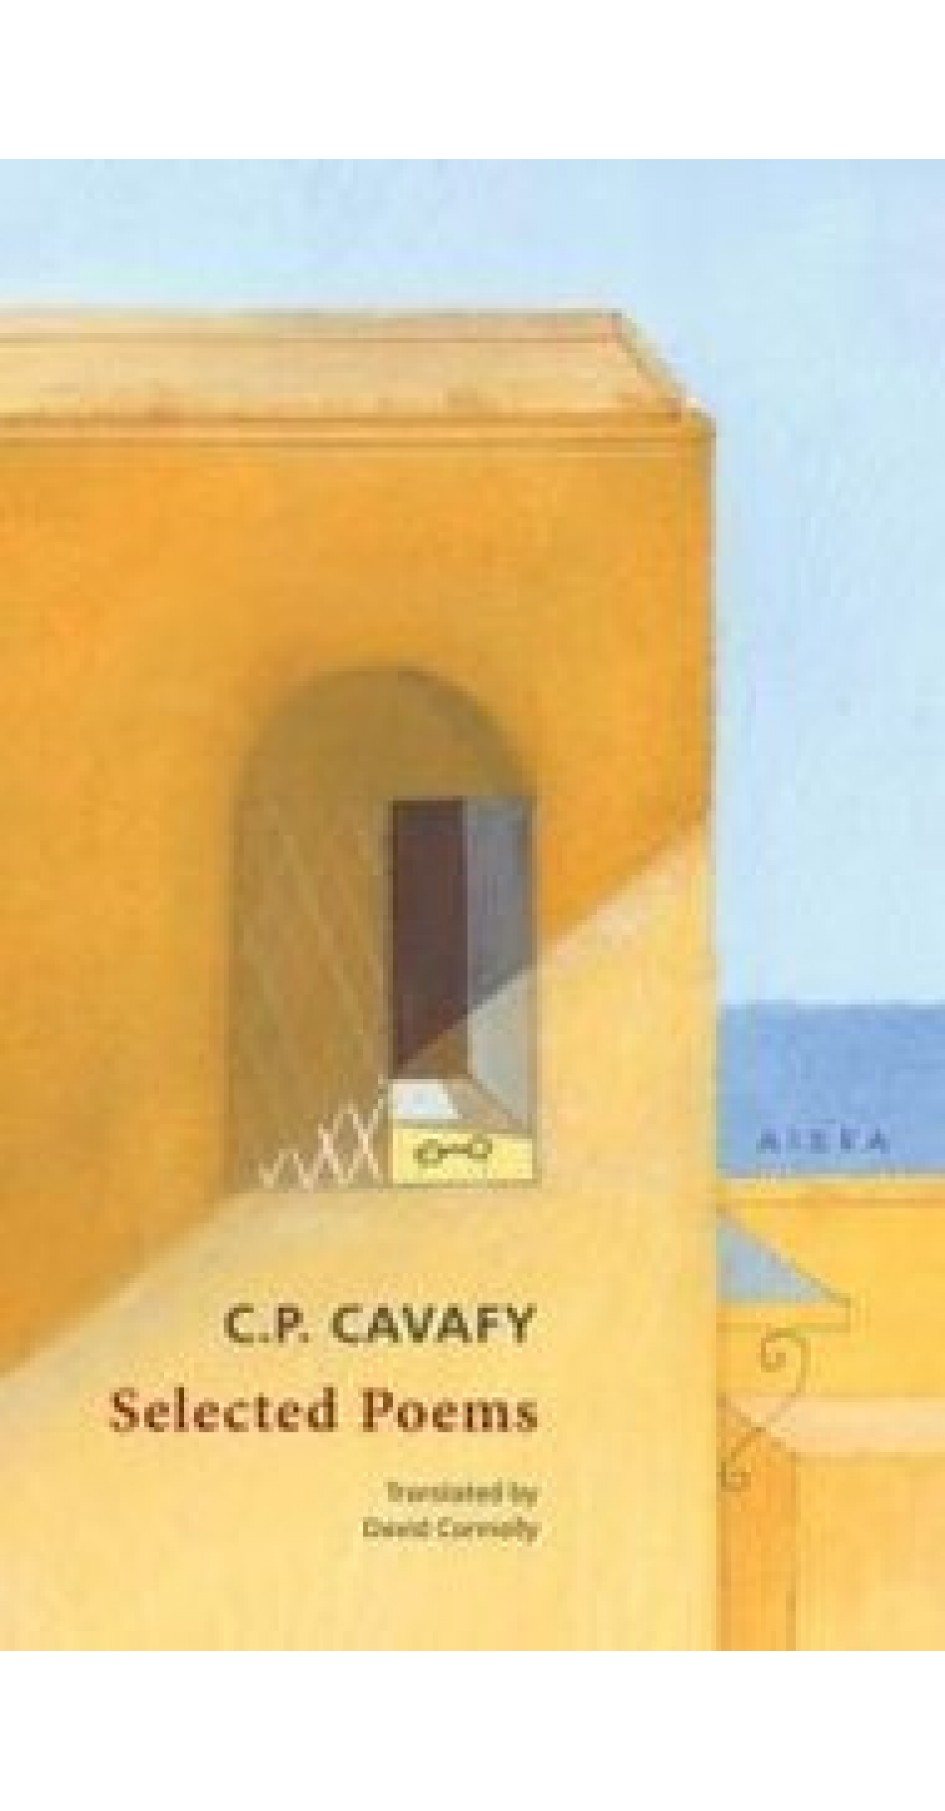 Cavafy C.P. - Selected Poems (Book in English)